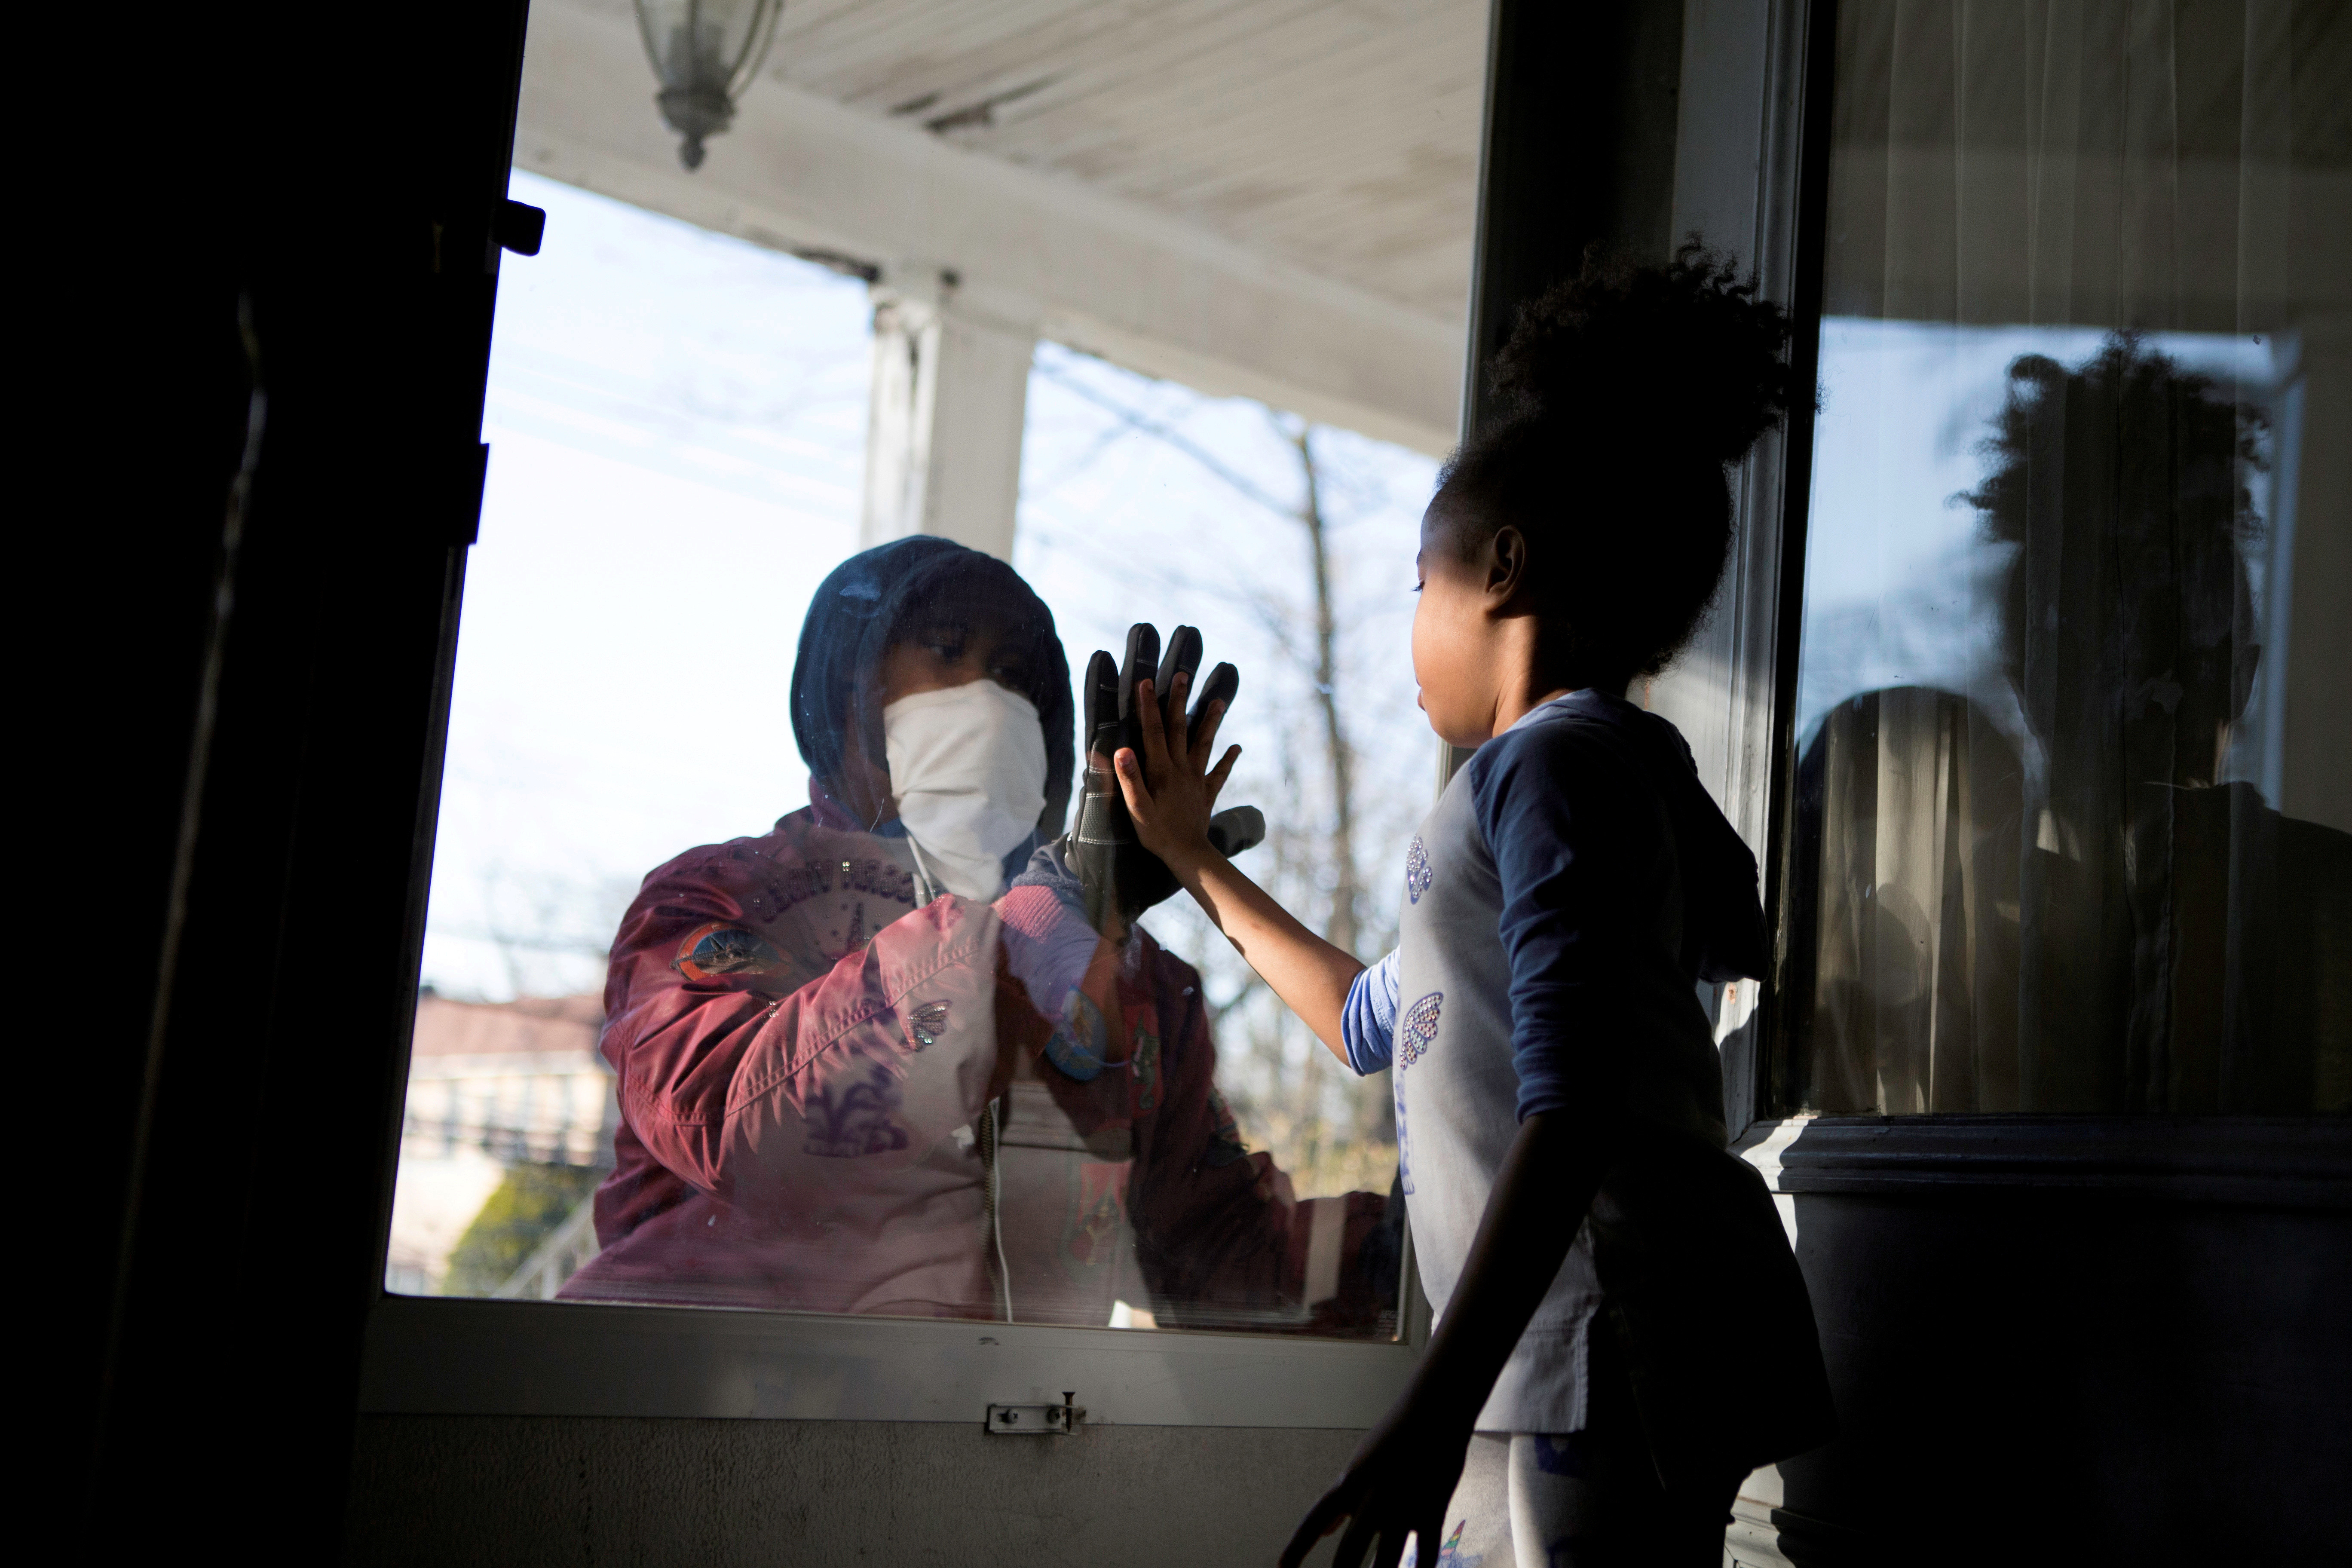 Hashim, an essential worker in the healthcare industry, greets his daughter through the closed door as he maintains social distance from his family as he works amid the coronavirus disease (COVID-19) outbreak in New Rochelle, New York, U.S., April 11, 2020. Picture taken April 11, 2020.  REUTERS/Joy Malone     TPX IMAGES OF THE DAY  REFILE - CORRECTING STATE - RC253G9I4I5B